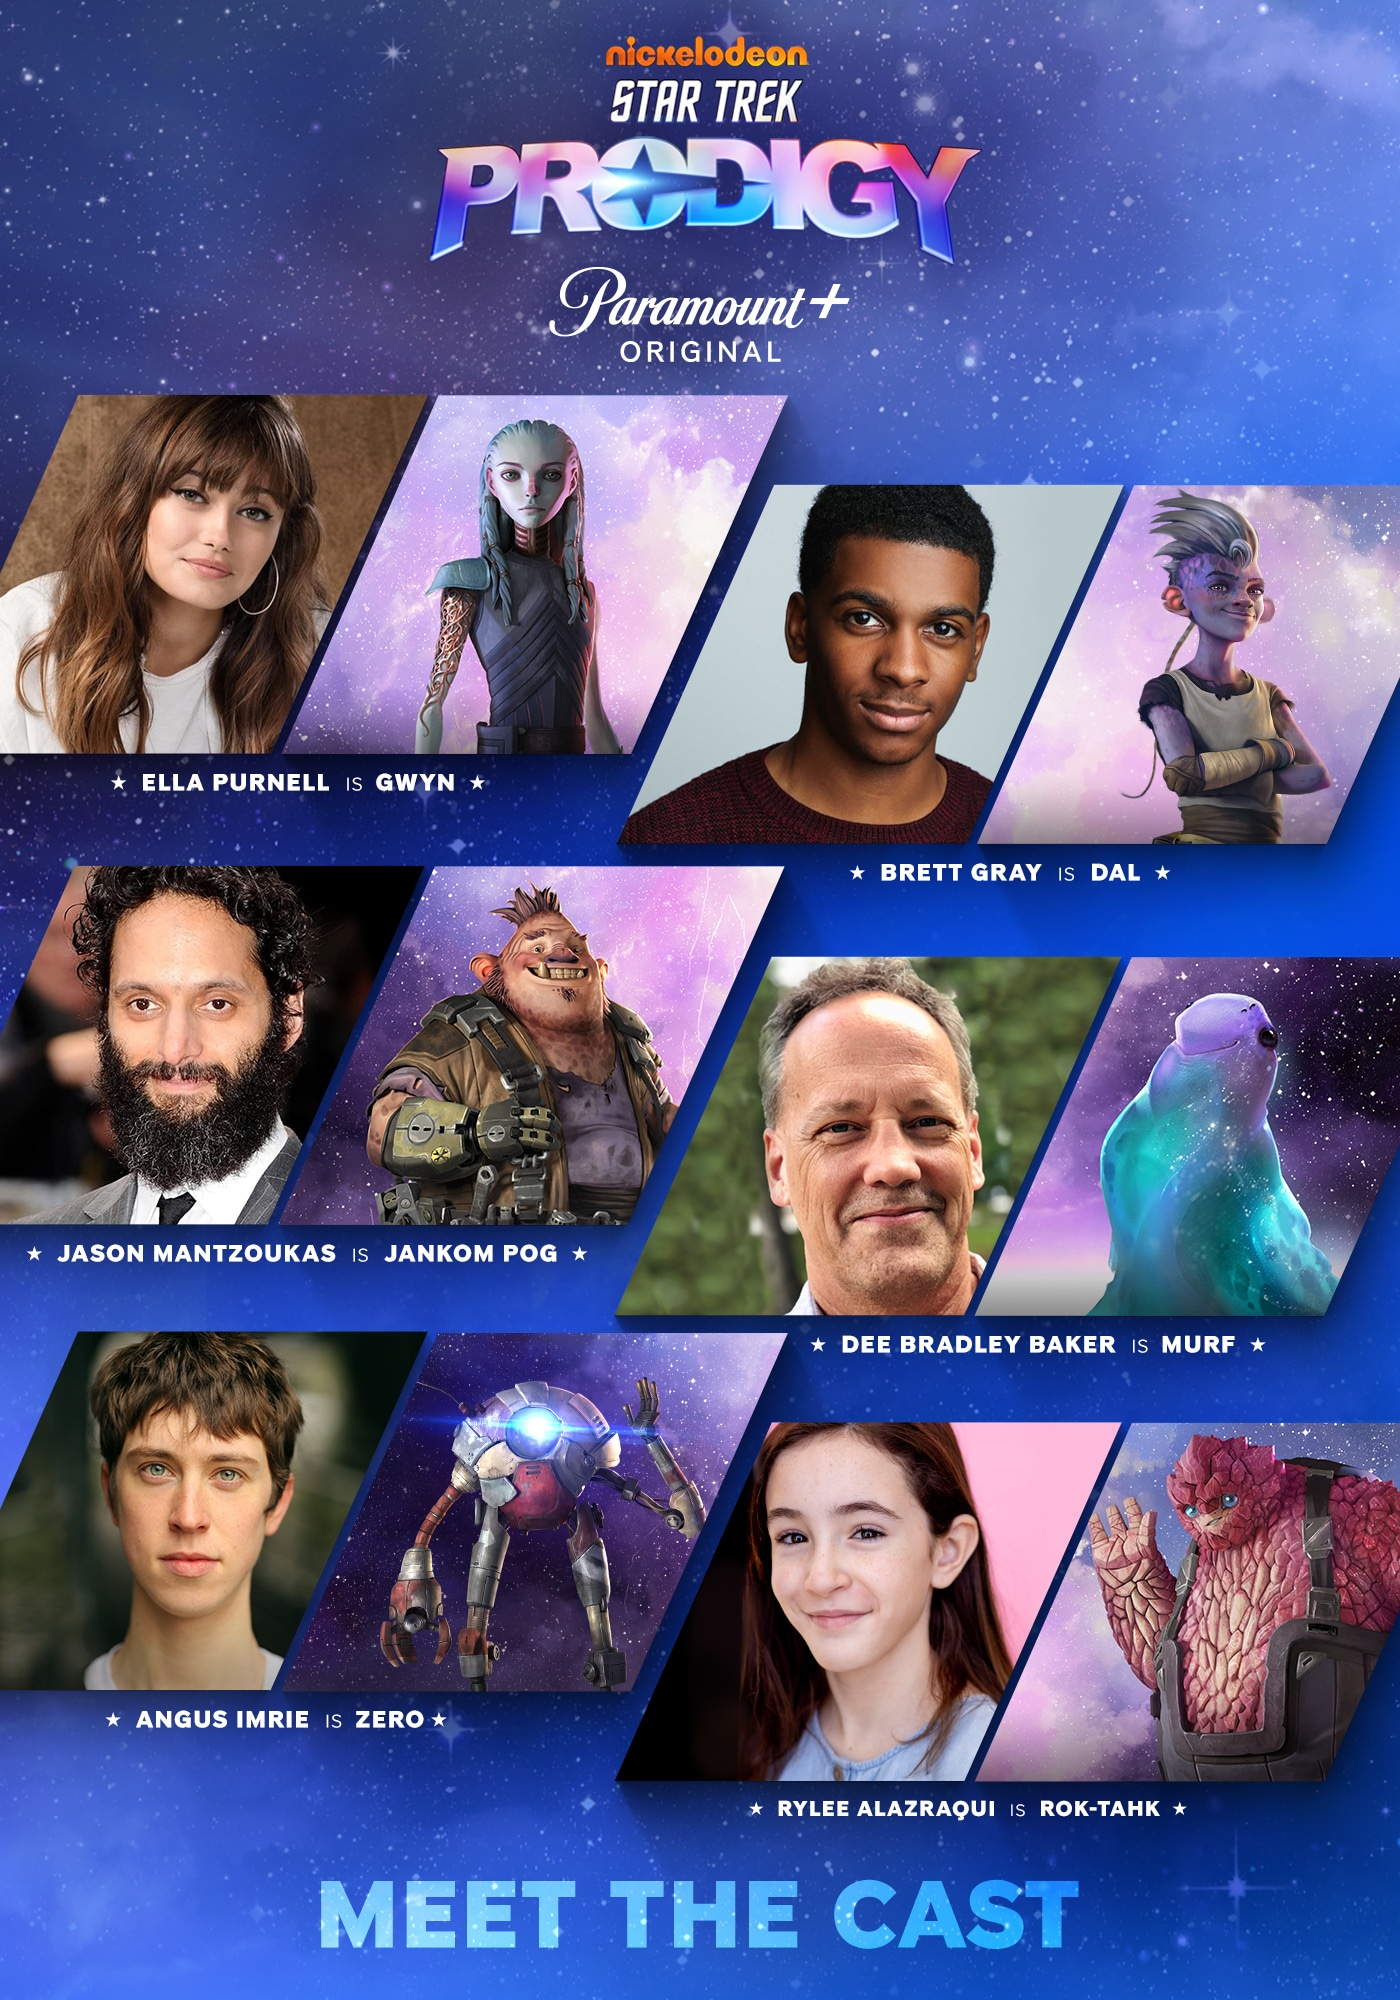 Meet the Star Trek: Prodigy cast and their characters 14